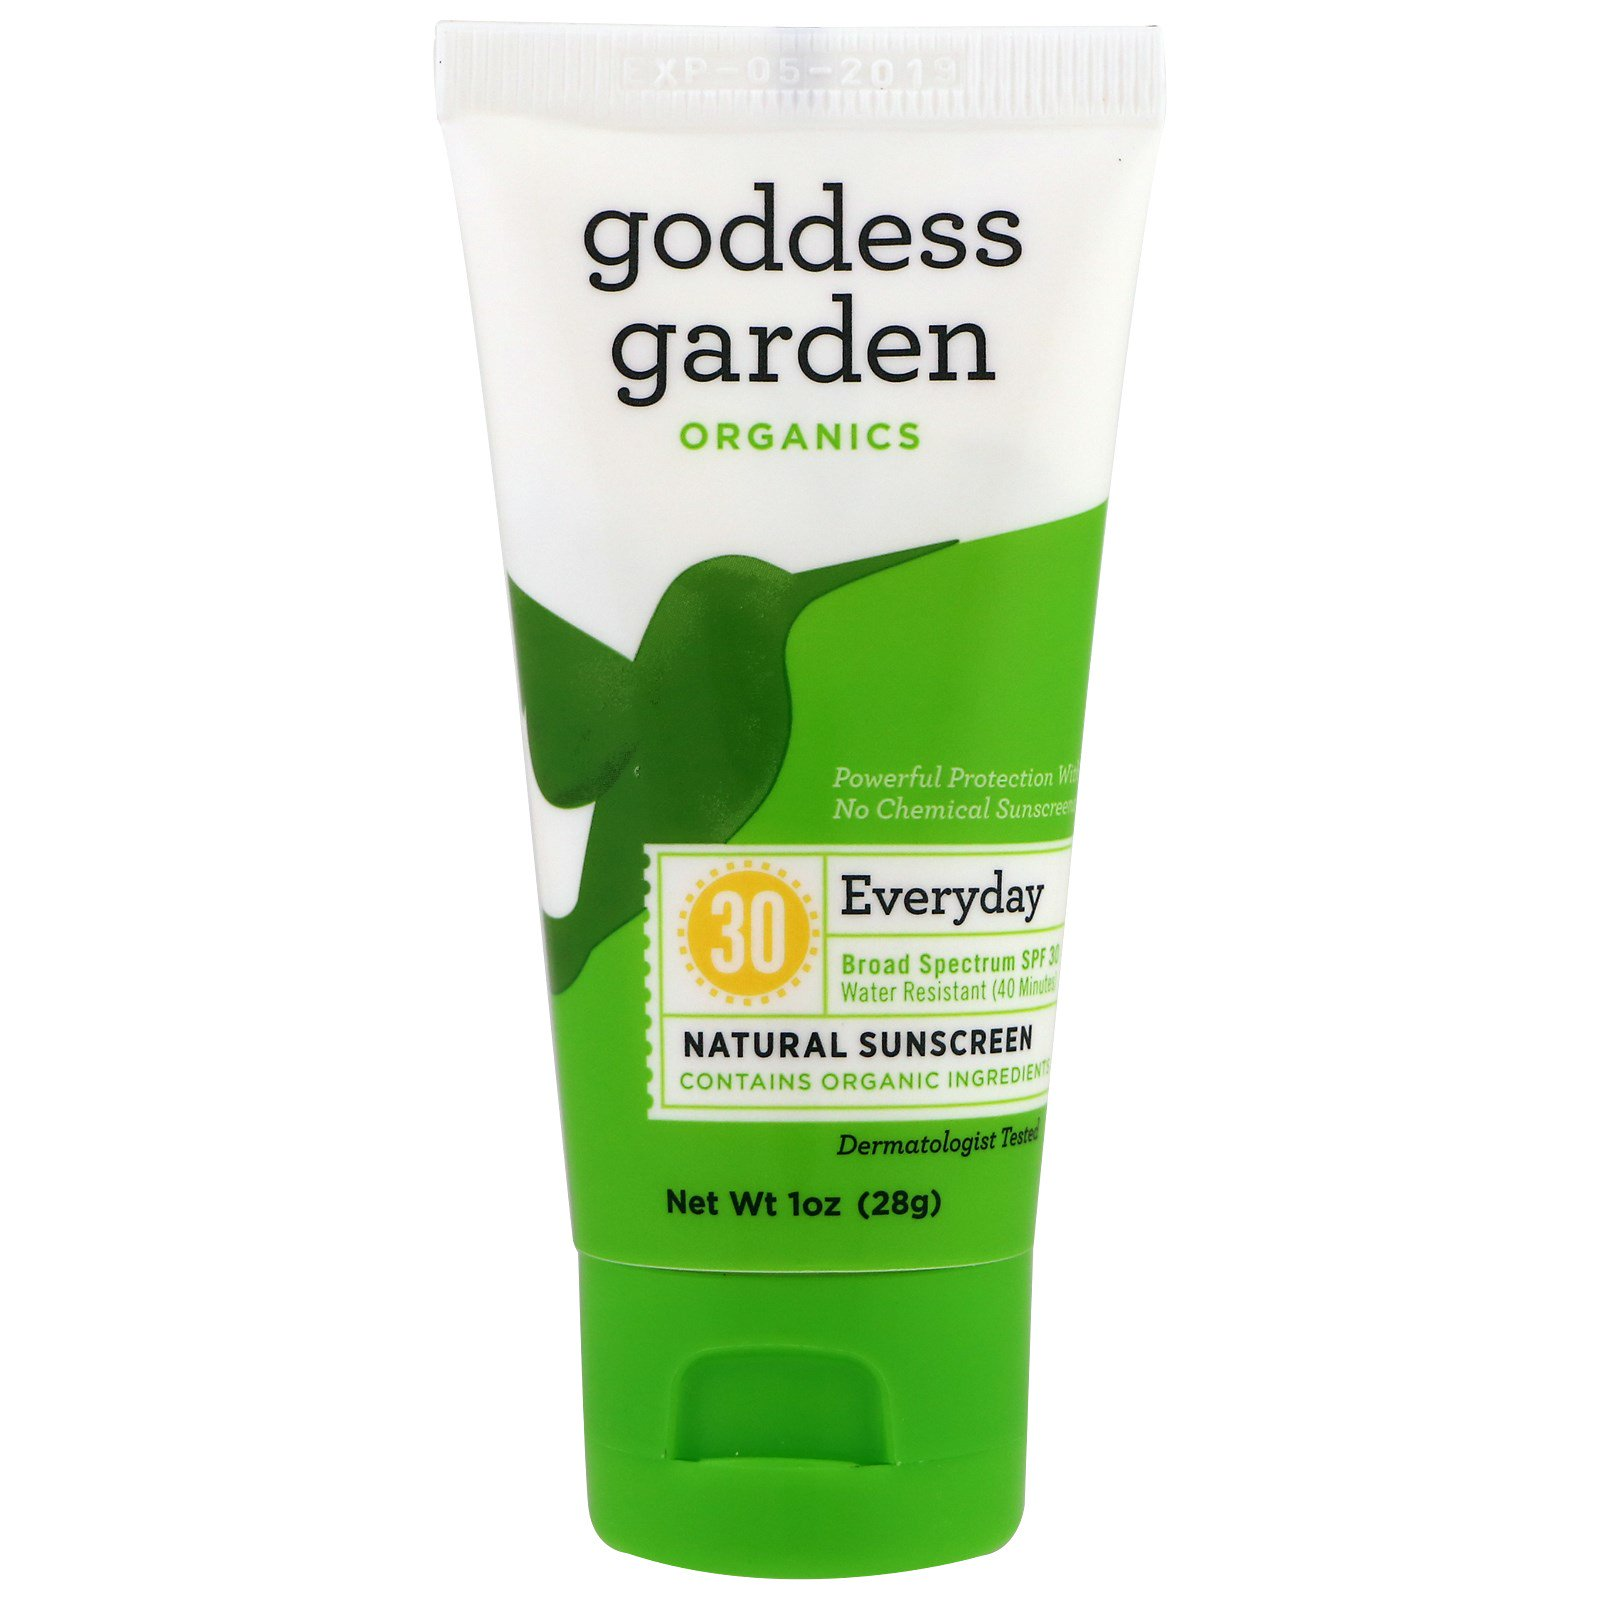 skin earth organic care kindly yourself kendallyn goddess img garden organics shop the sunscreen treat with